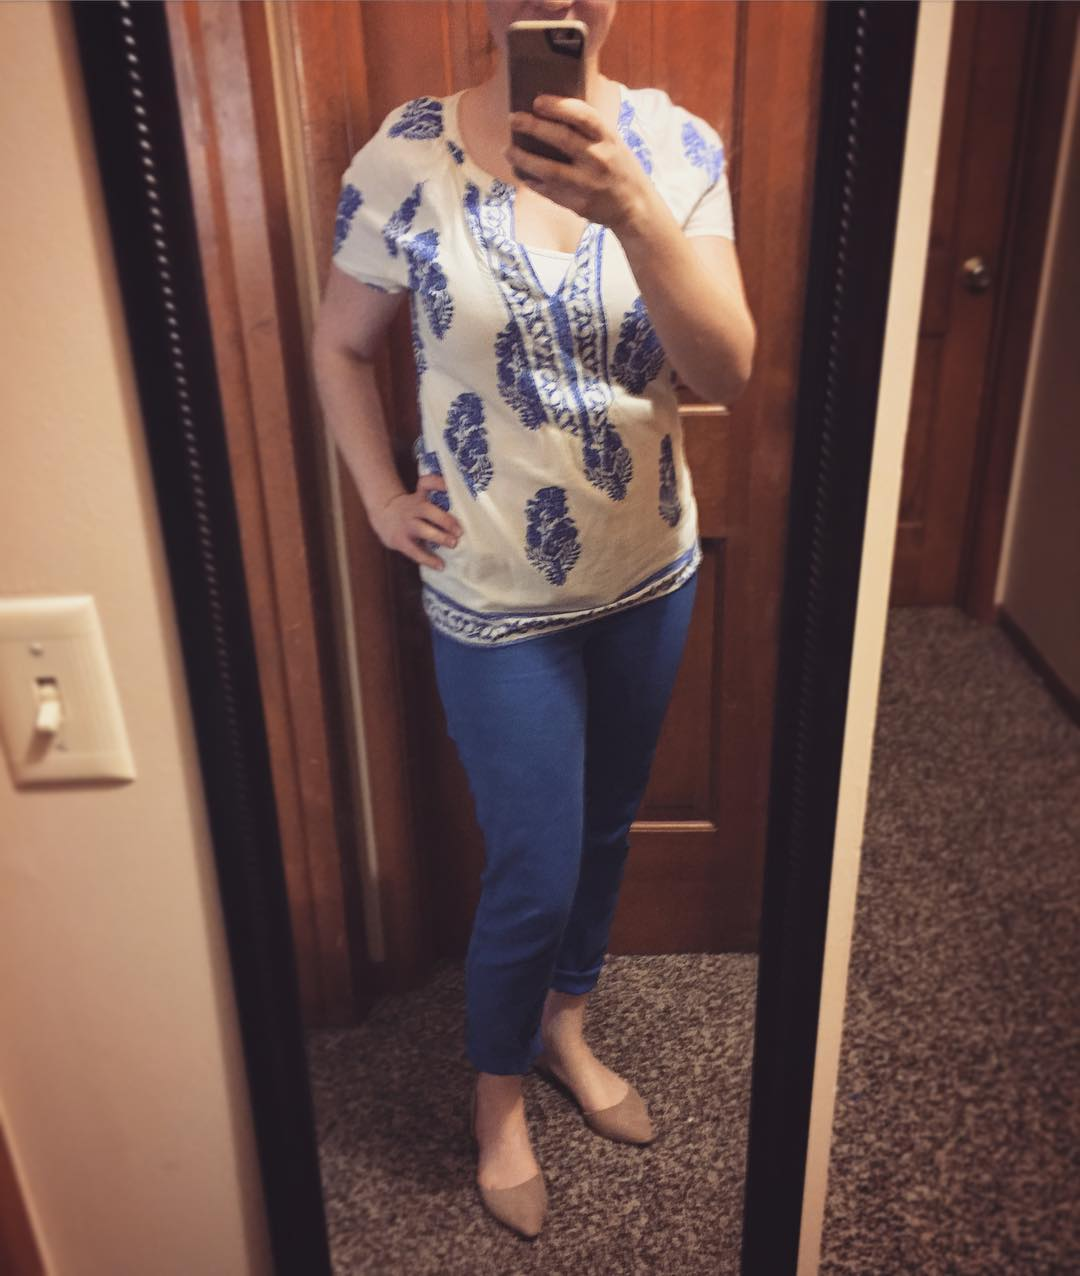 Stitch Fix top for less! Love Facebook BST groups :)